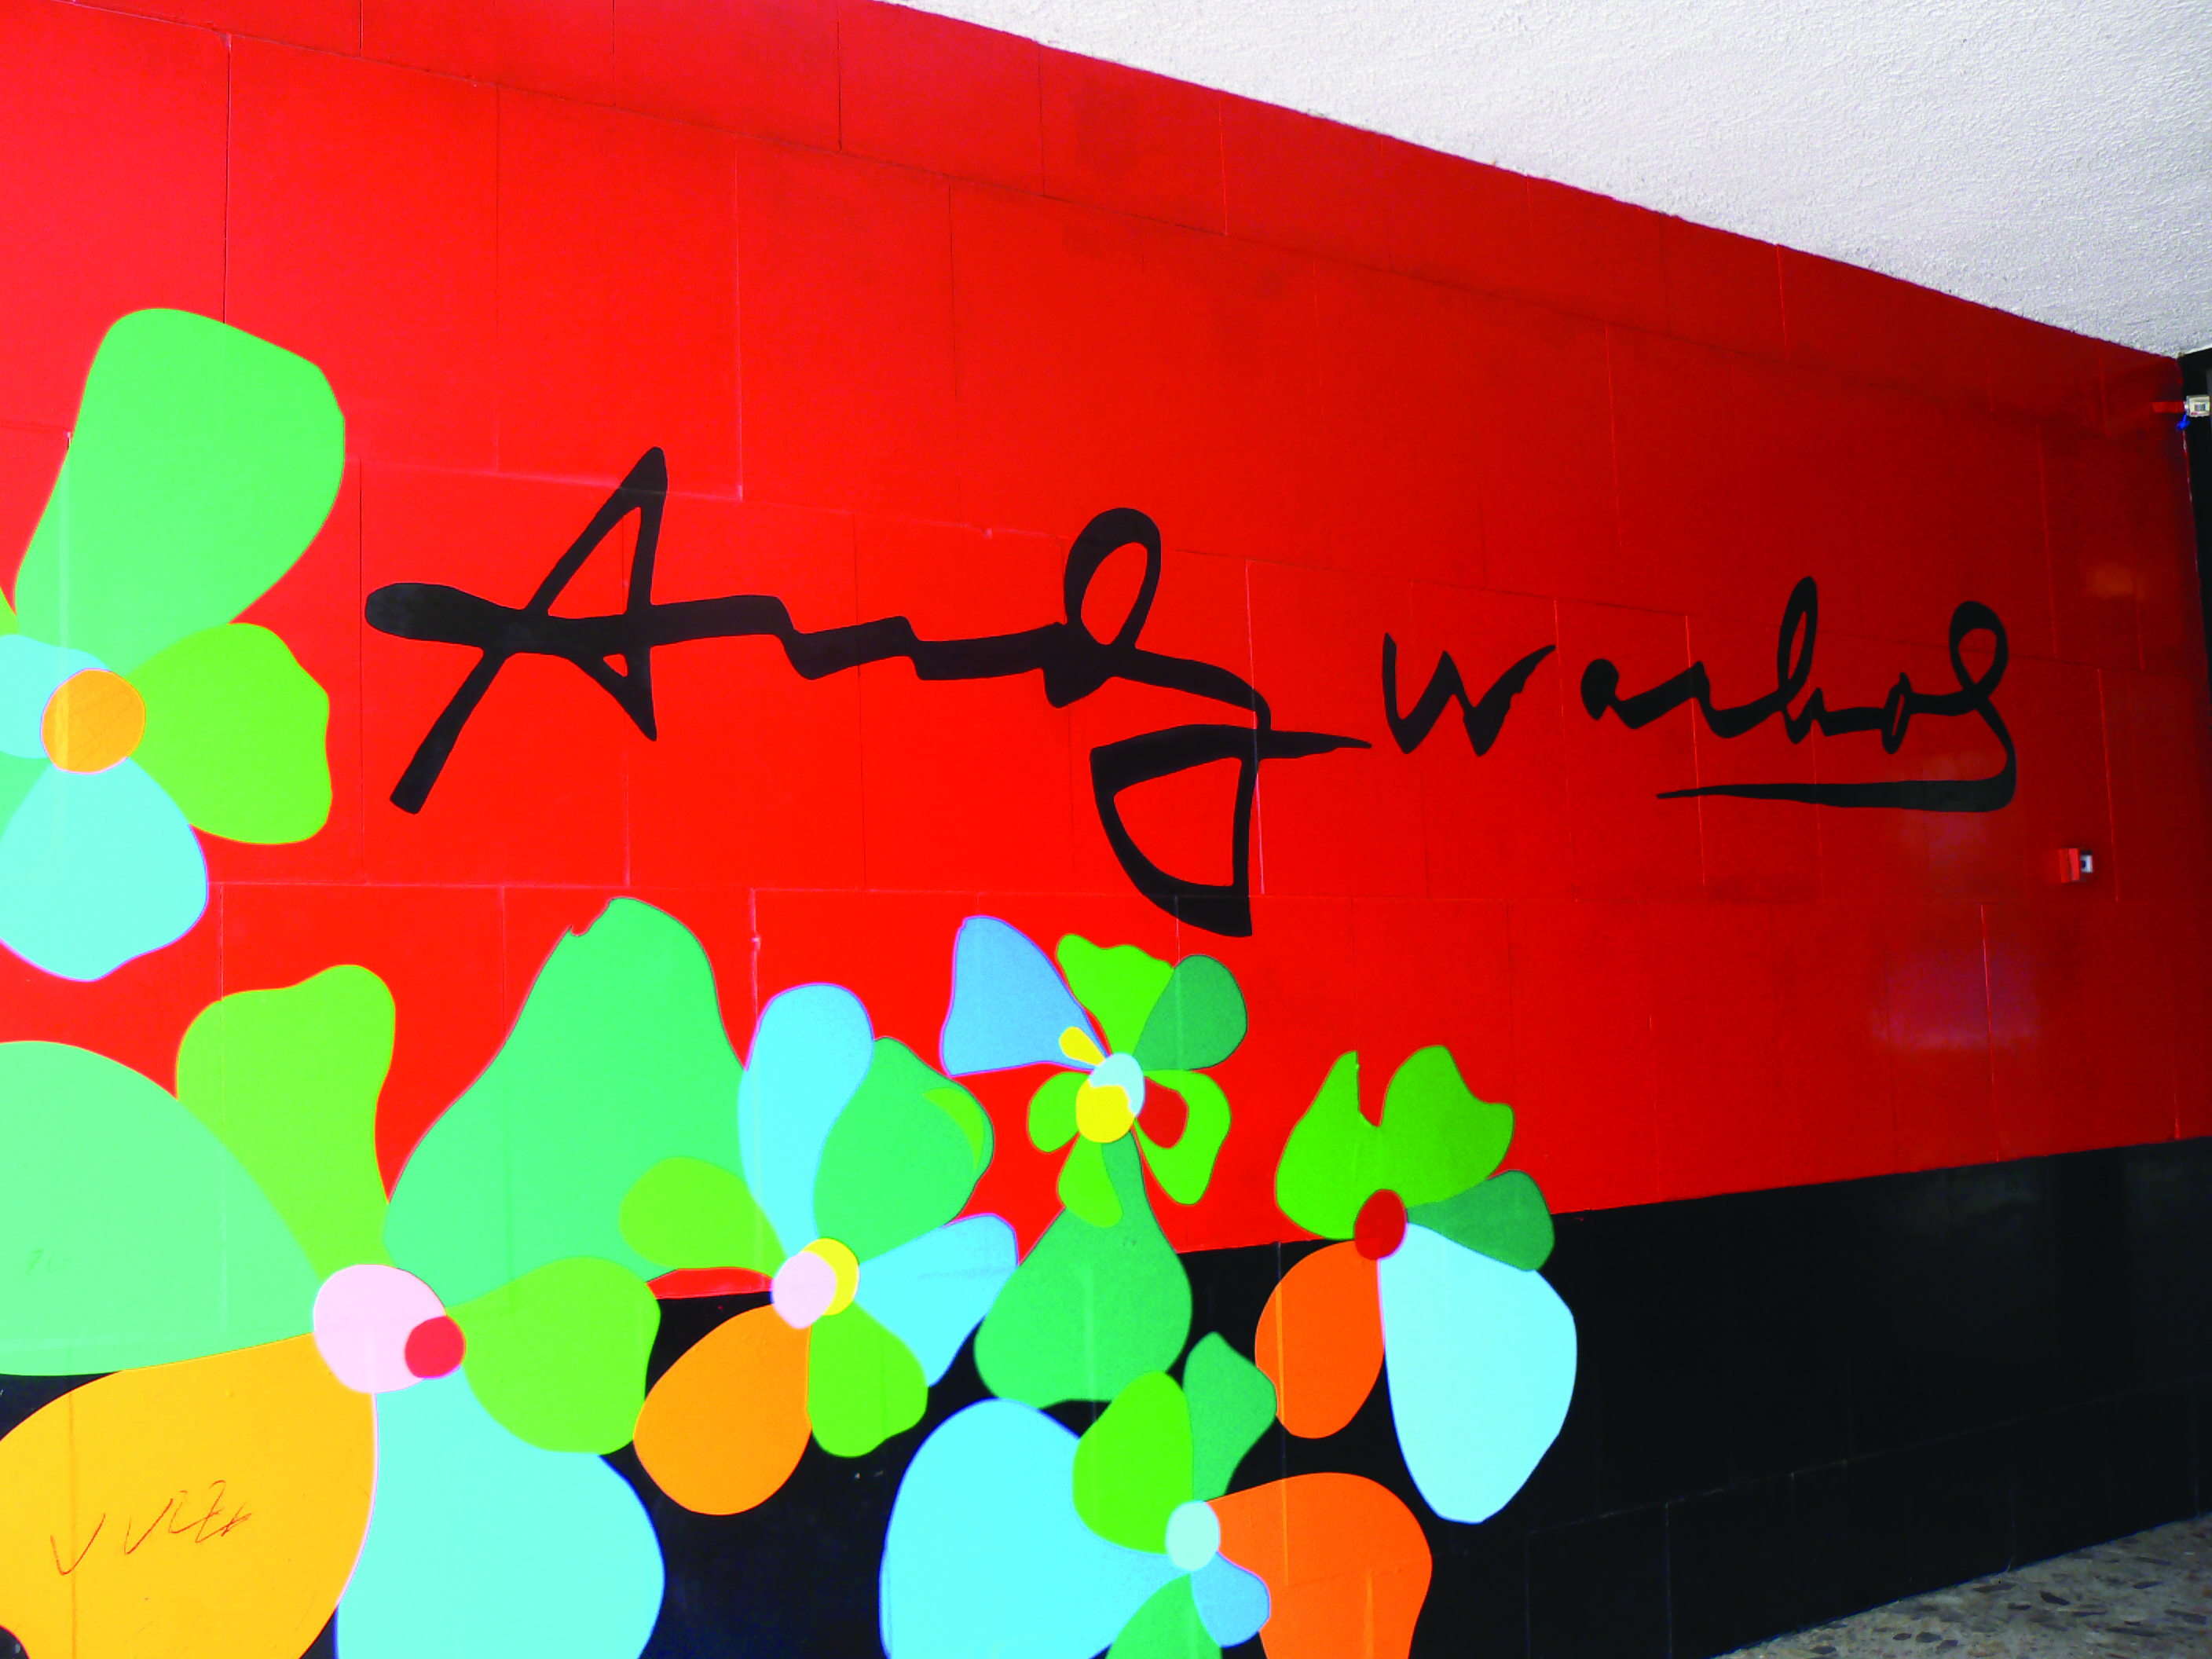 Andy Warhol: a collector's perspective